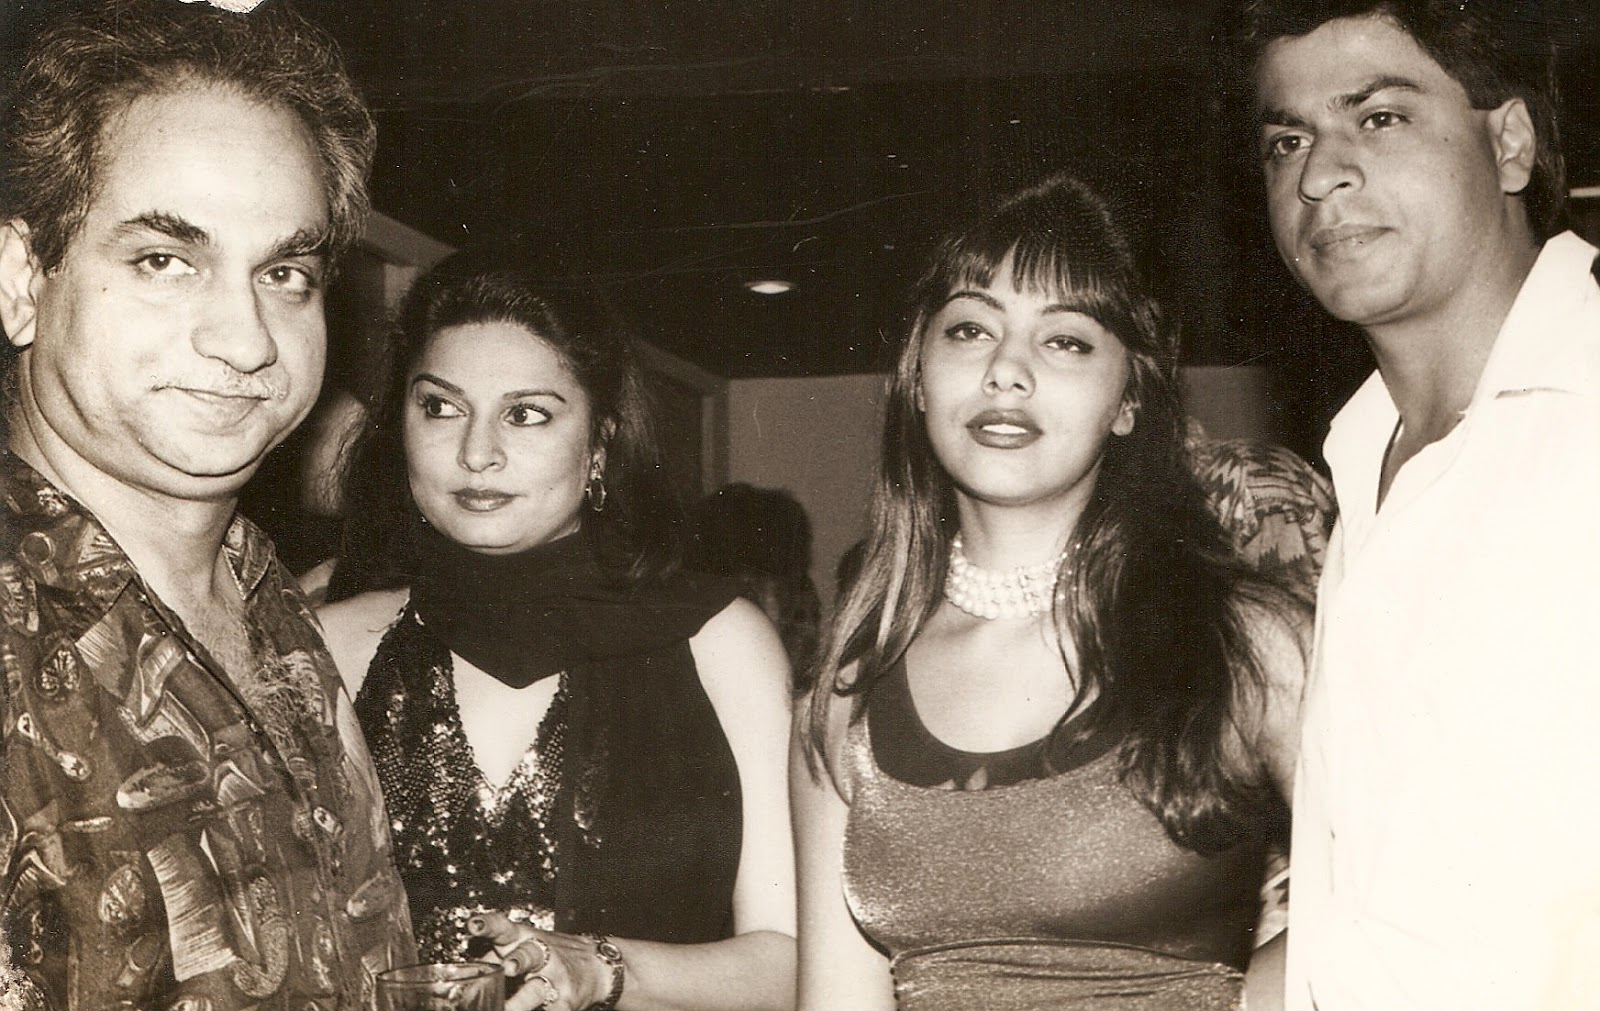 Nisha JamVwal Writes: Ramesh 'Sholay' Sippy's Wife & Ex Are Best Friends